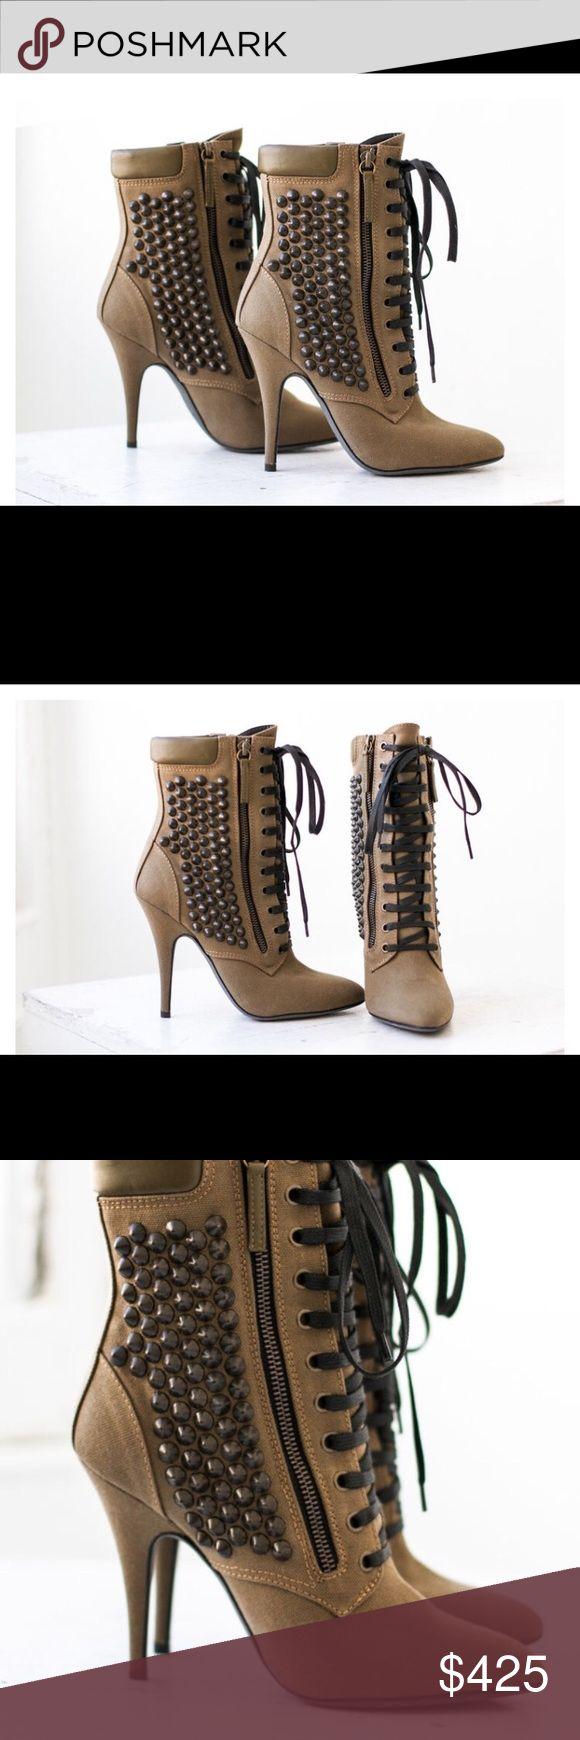 Giuseppe Zanotti x Balmain Boots Giuseppe Zanotti x Balmain Boots| Who remembers this amazing collab? When Giuseppe Zanotti and Balmain brought this chic military green bootie to a life they knew exactly how they wanted women to feel. Just think you have one shoe wearing both of your favorite designers. | Condition: EXCELLENT| Sole Condition: Light scuffs at the bottom of the shoe | Heel Height: 4 1/2"